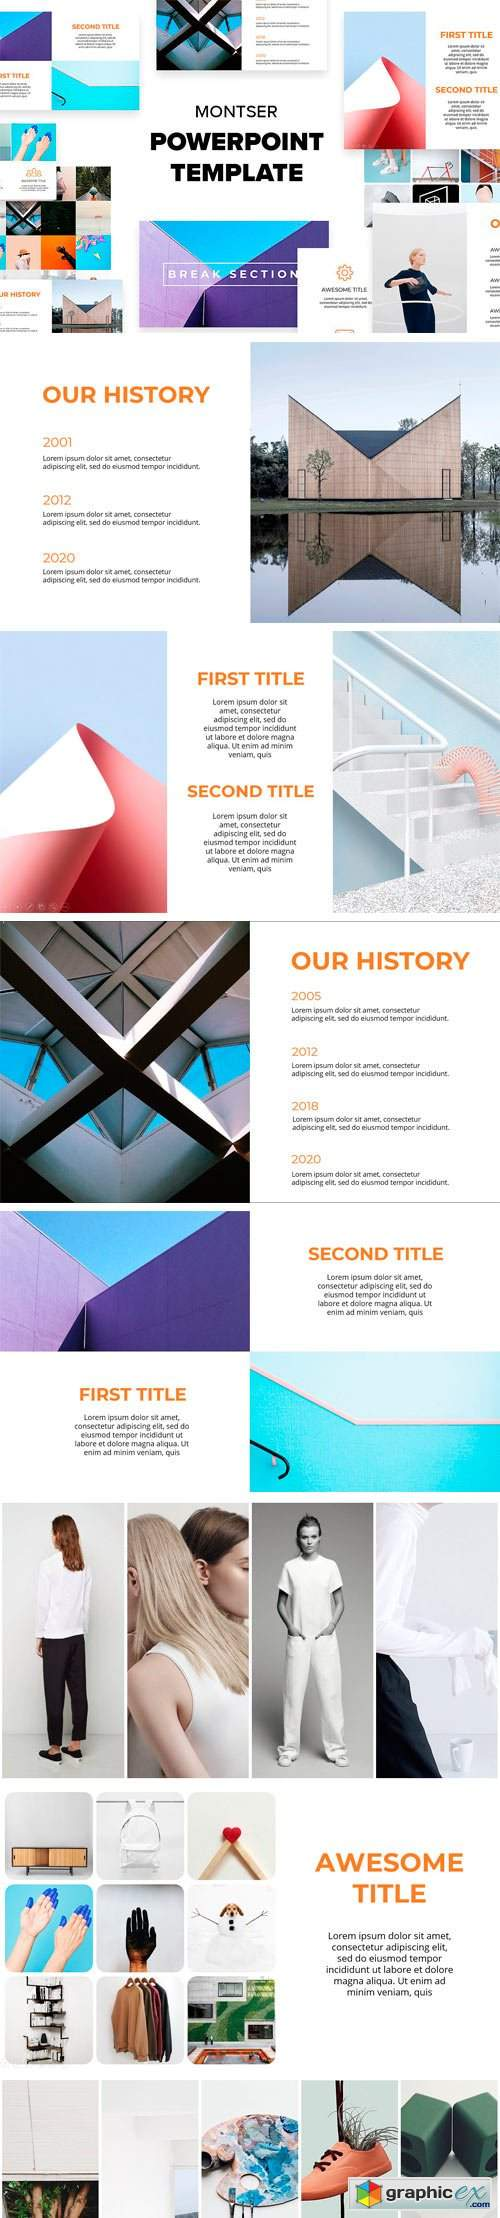 Montser Powerpoint Template